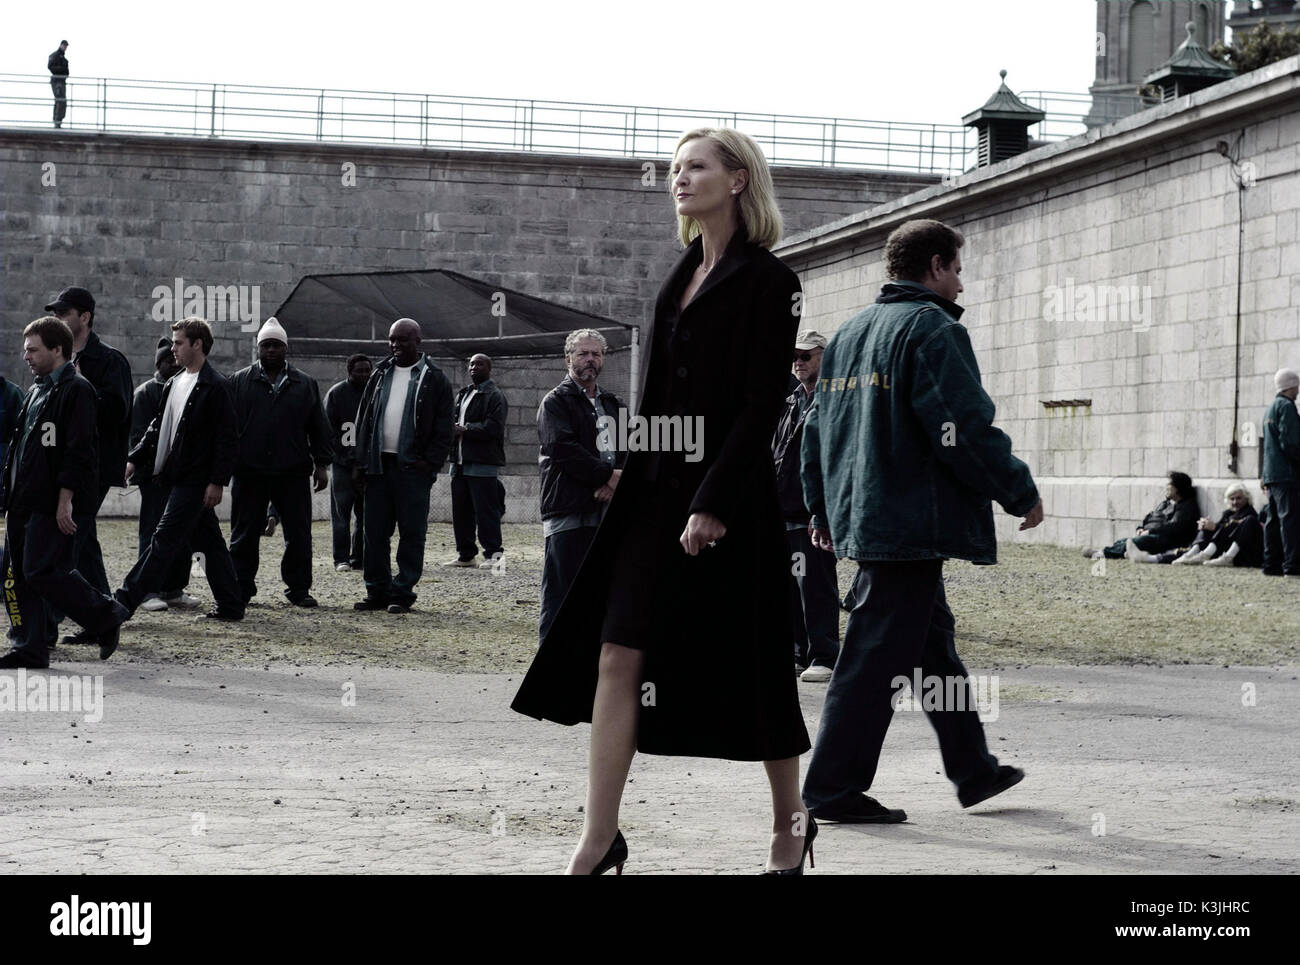 DEATH RACE JOAN ALLEN as Warden Hennessey, walks the yard in an action-thriller set in the near future. DEATH RACE     Date: 2008 - Stock Image